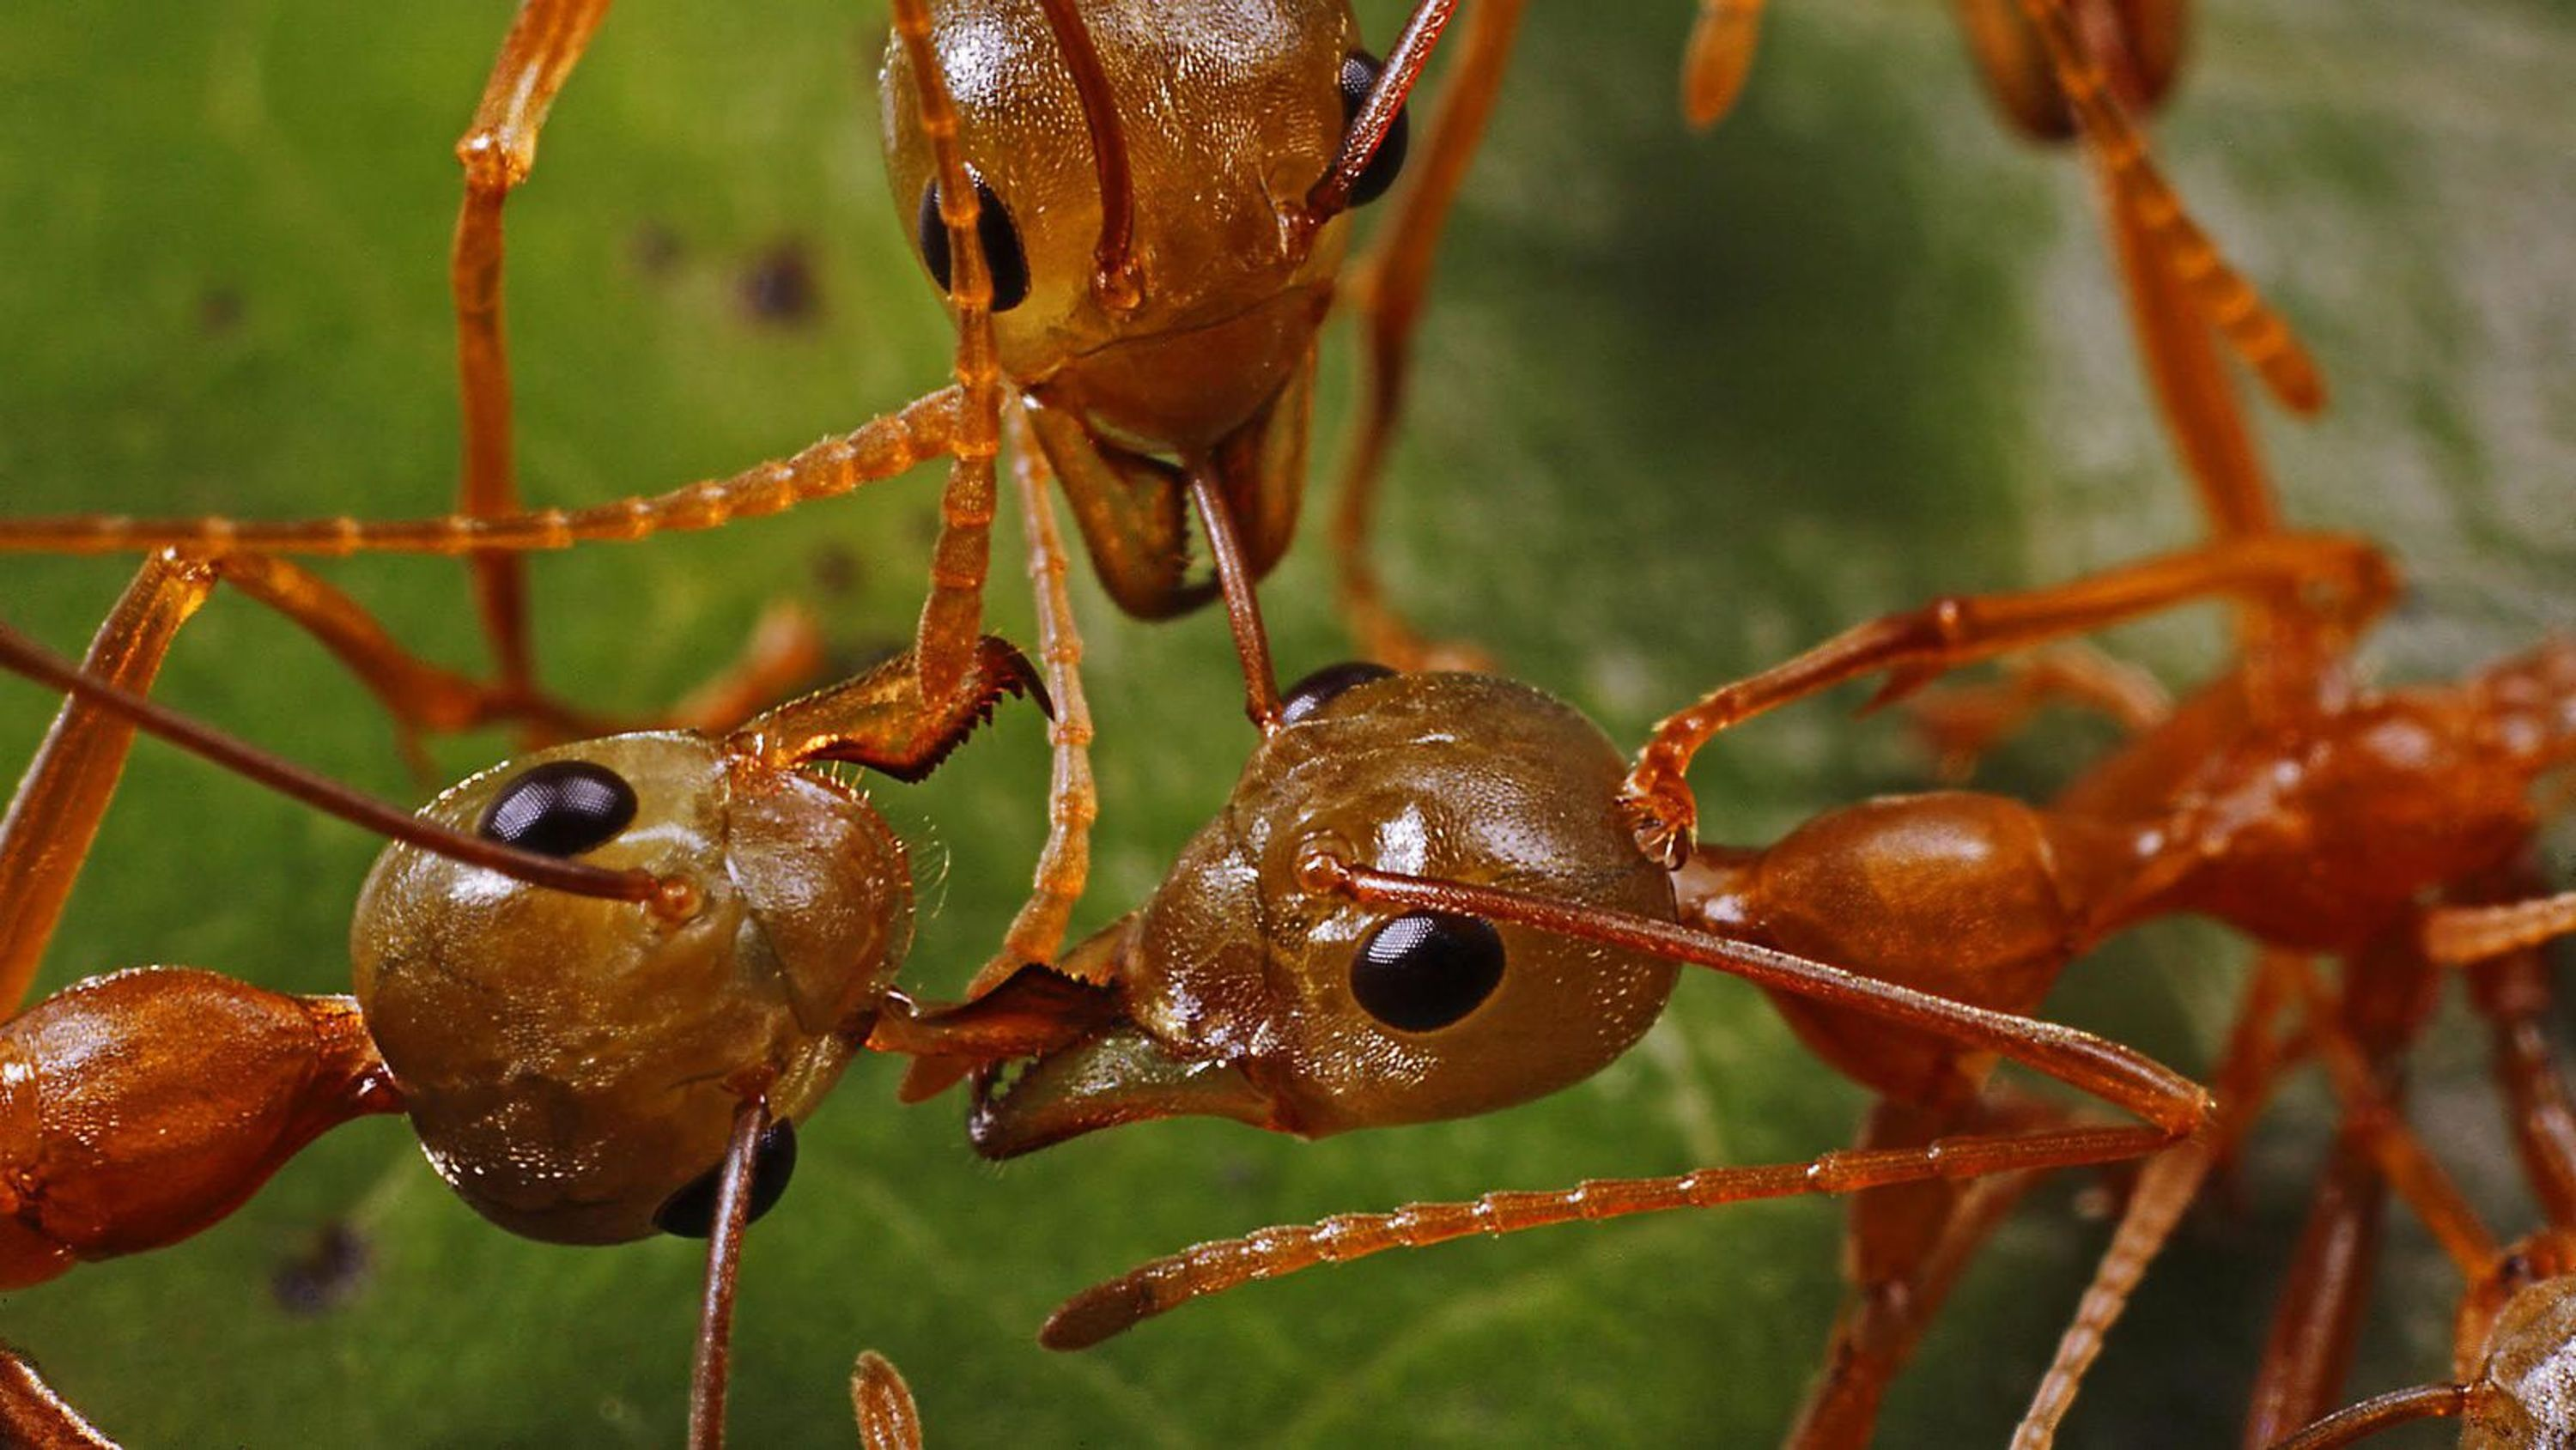 close-up on the heads of a few ants and their antennas